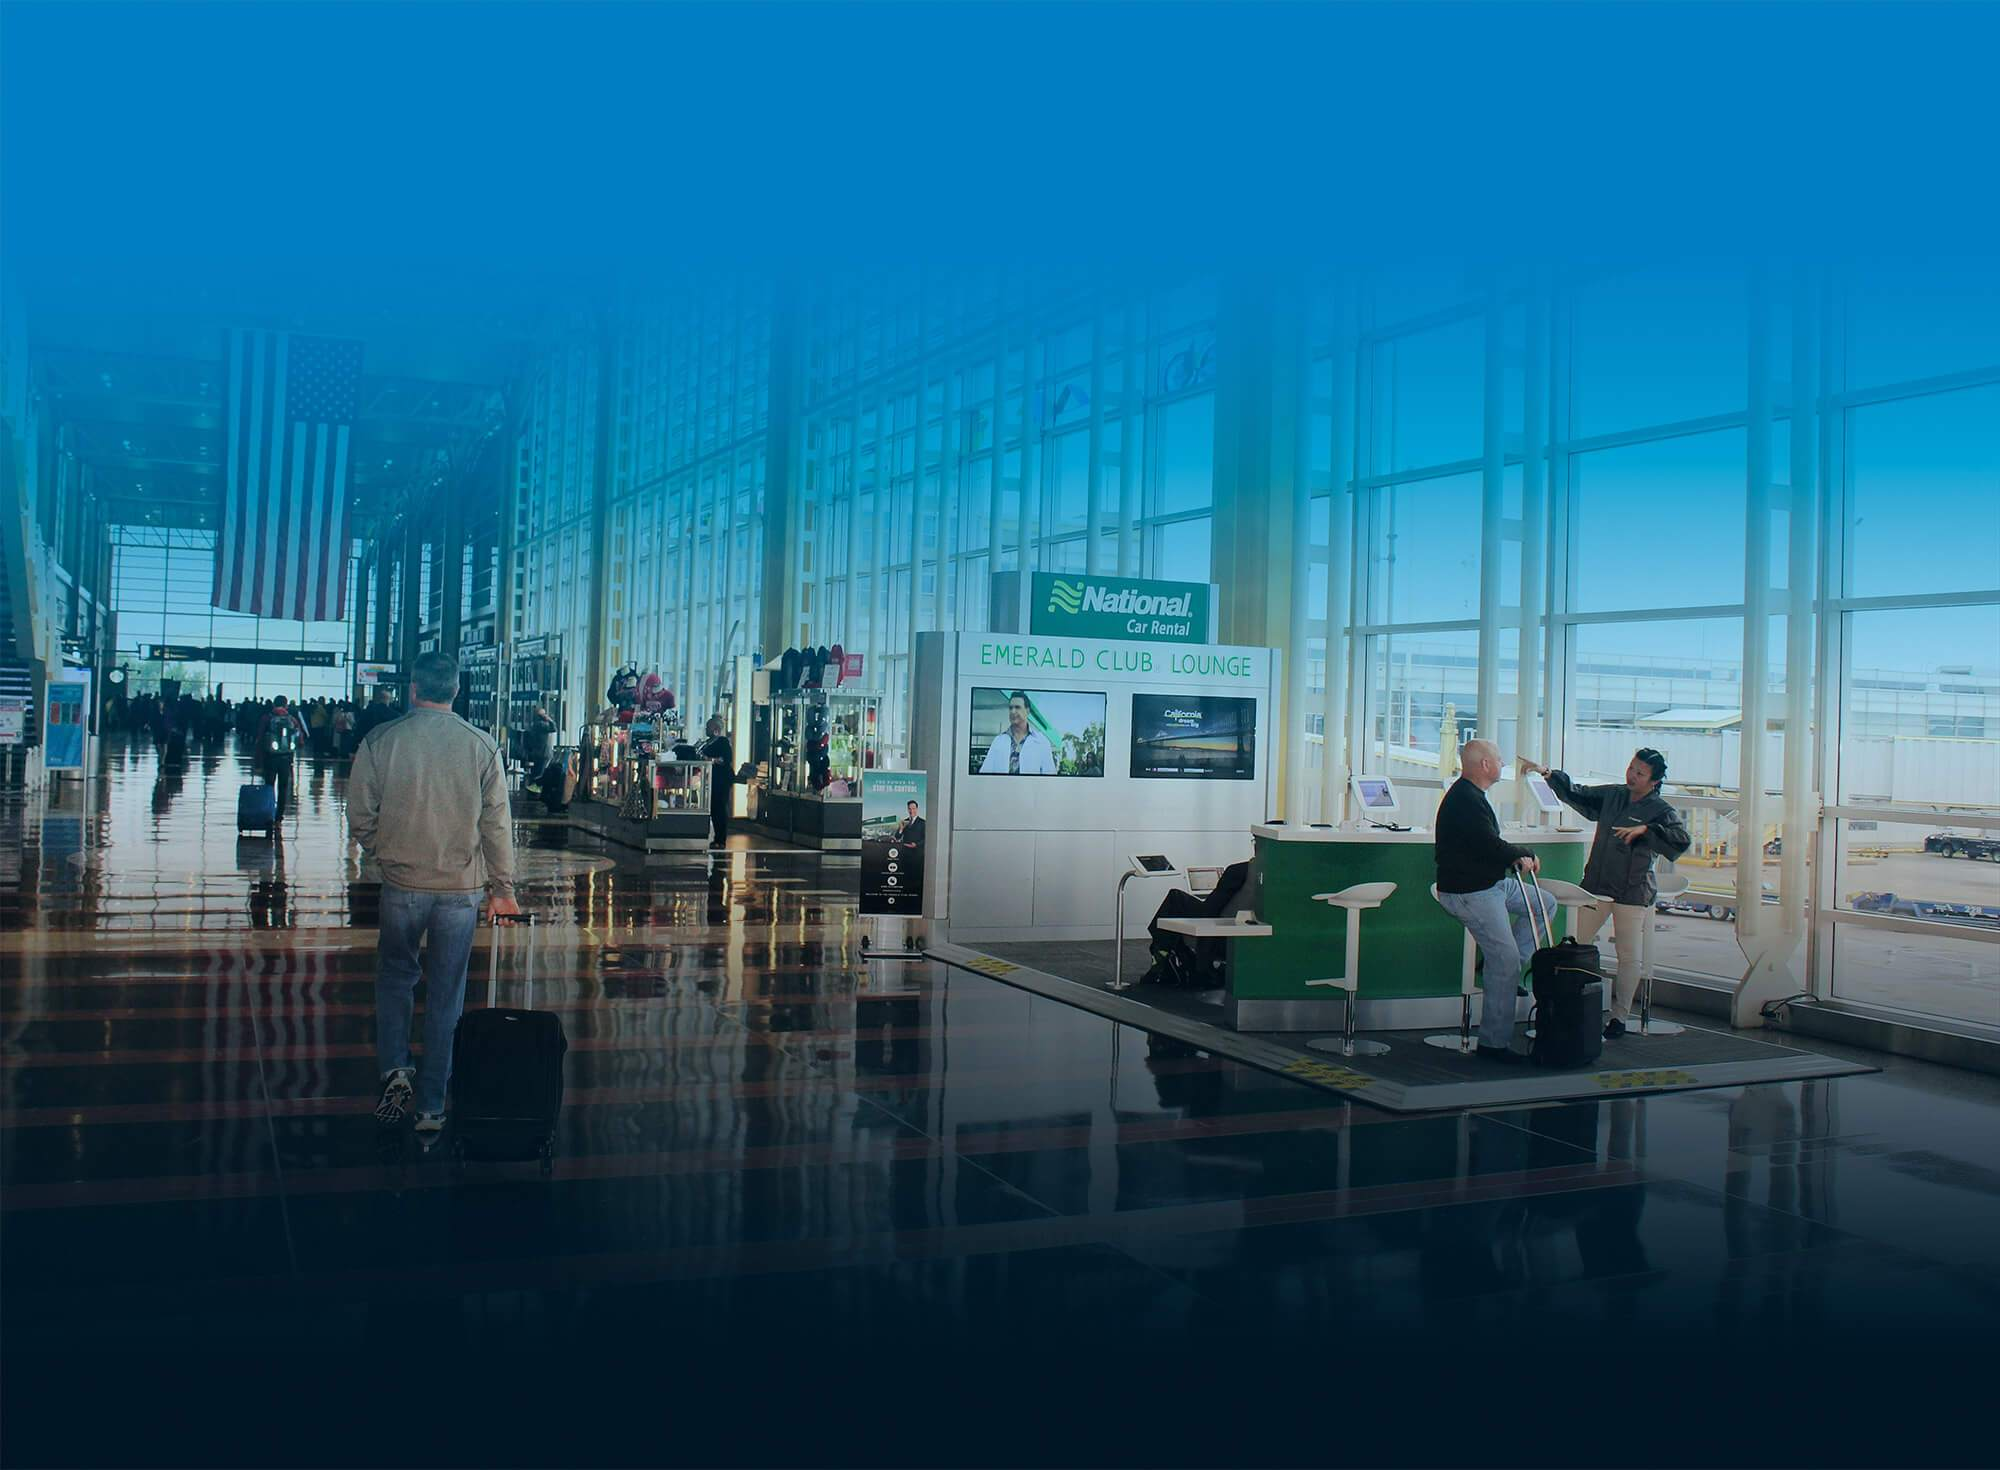 Building an airport experience that empowers and engages travelers